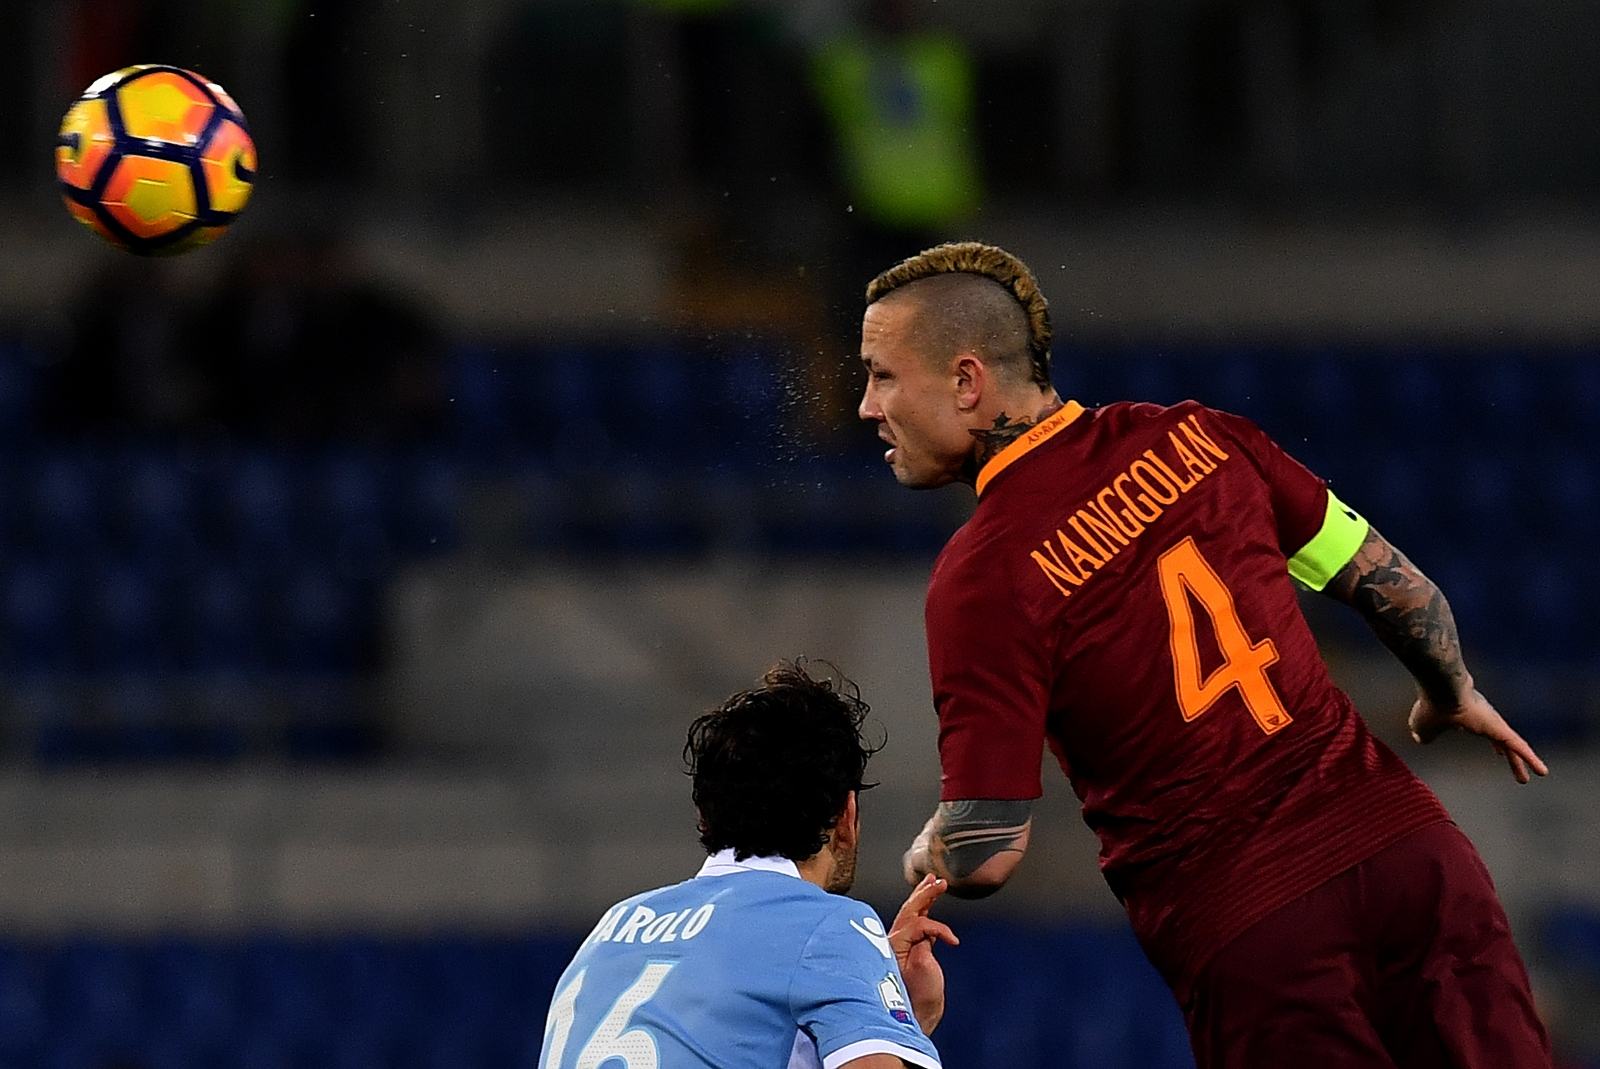 Radja Nainggolan ends speculation over future by penning new Roma deal